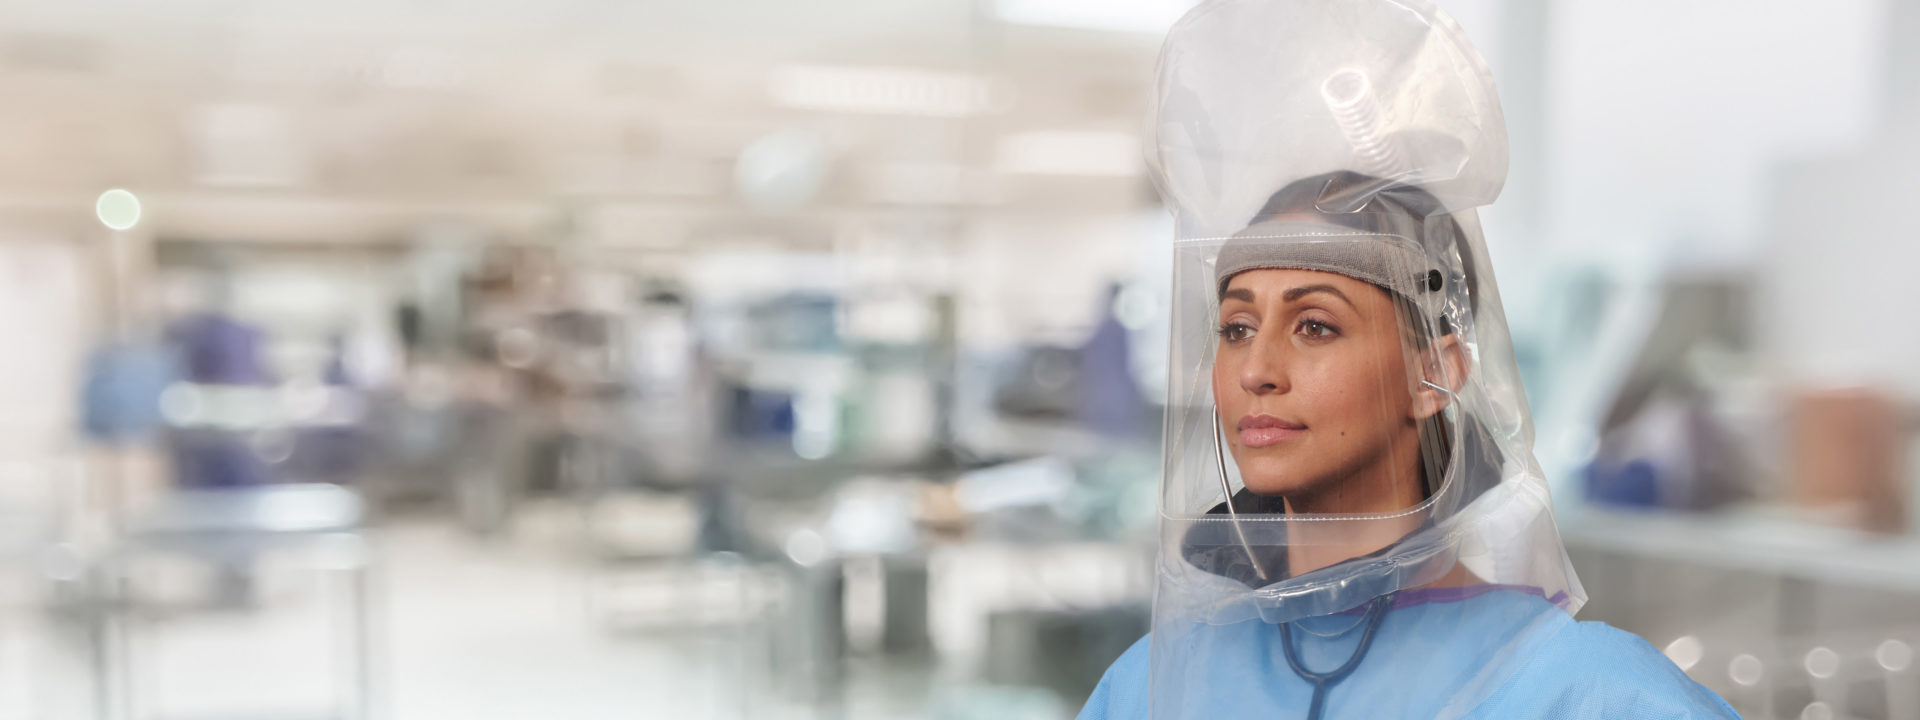 ILC Dover Responds to PPE Shortage for Healthcare Workers, Expedites Manufacturing of New PAPR Hood